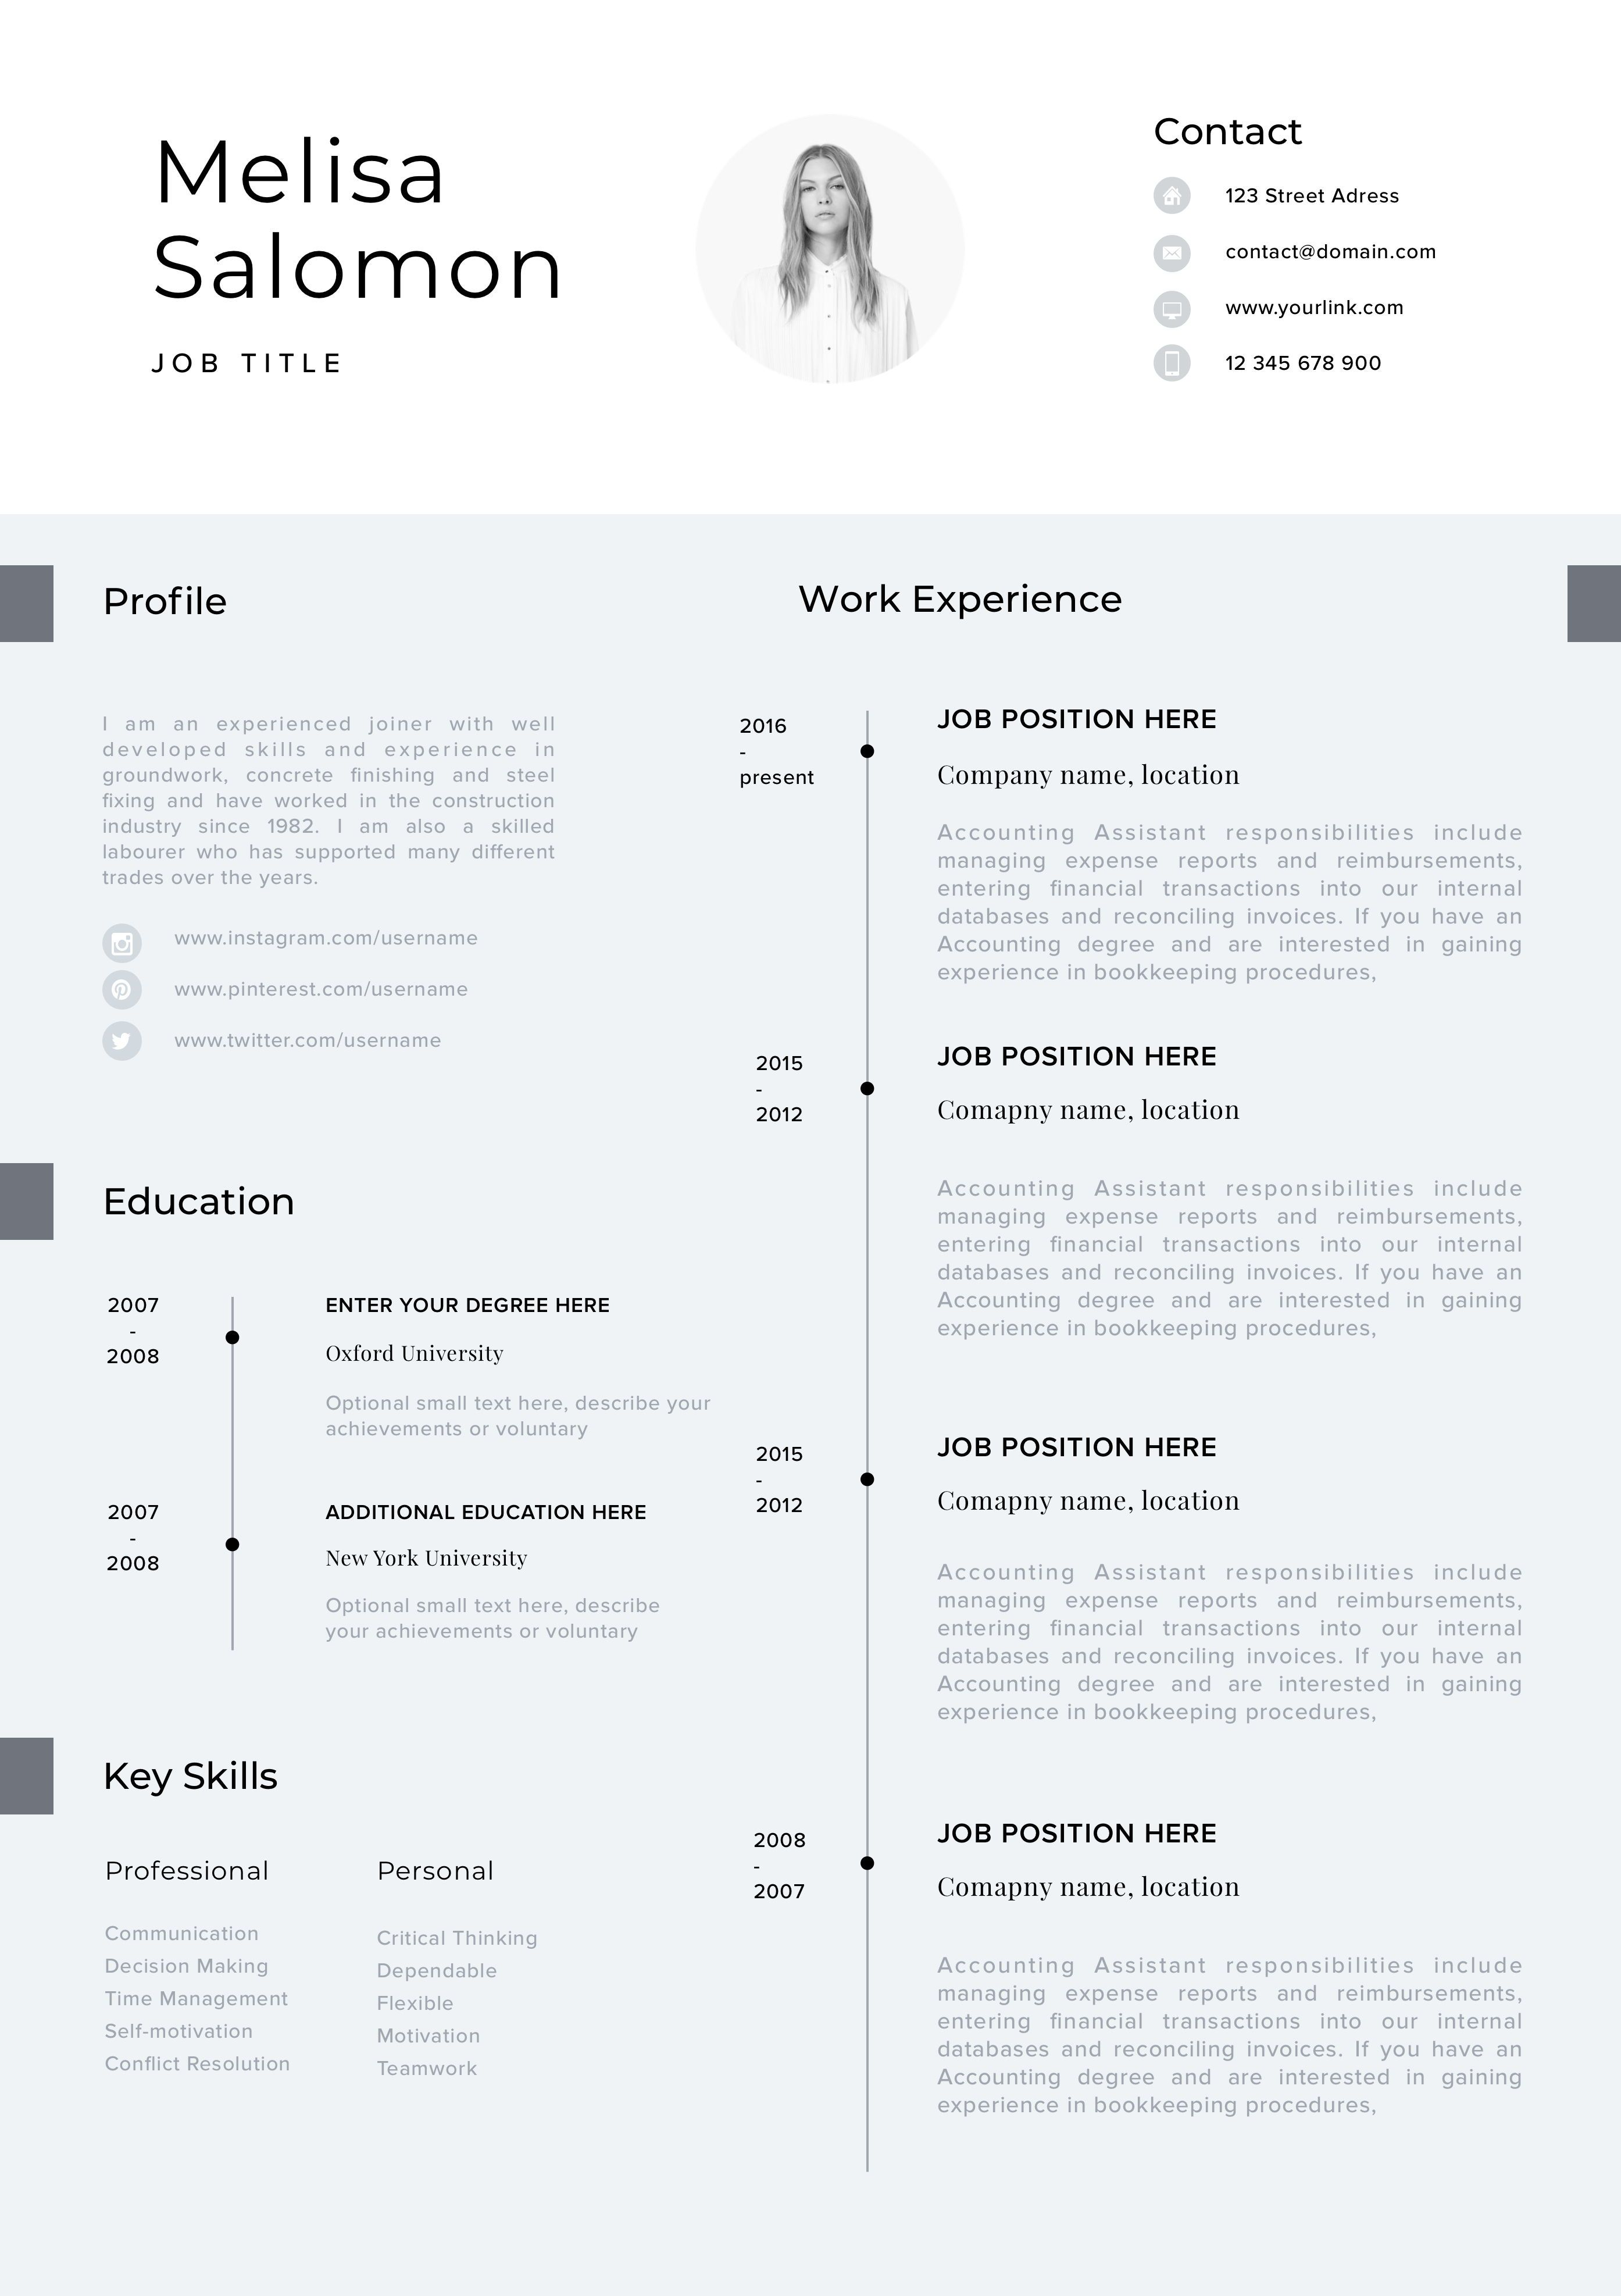 Cv Template Professional Resume Template With Photo Word Instant Download Modern Cv Design Creative Resume With Picture 1 Page Resume Cv Template Cv Template Professional Resume Template Professional